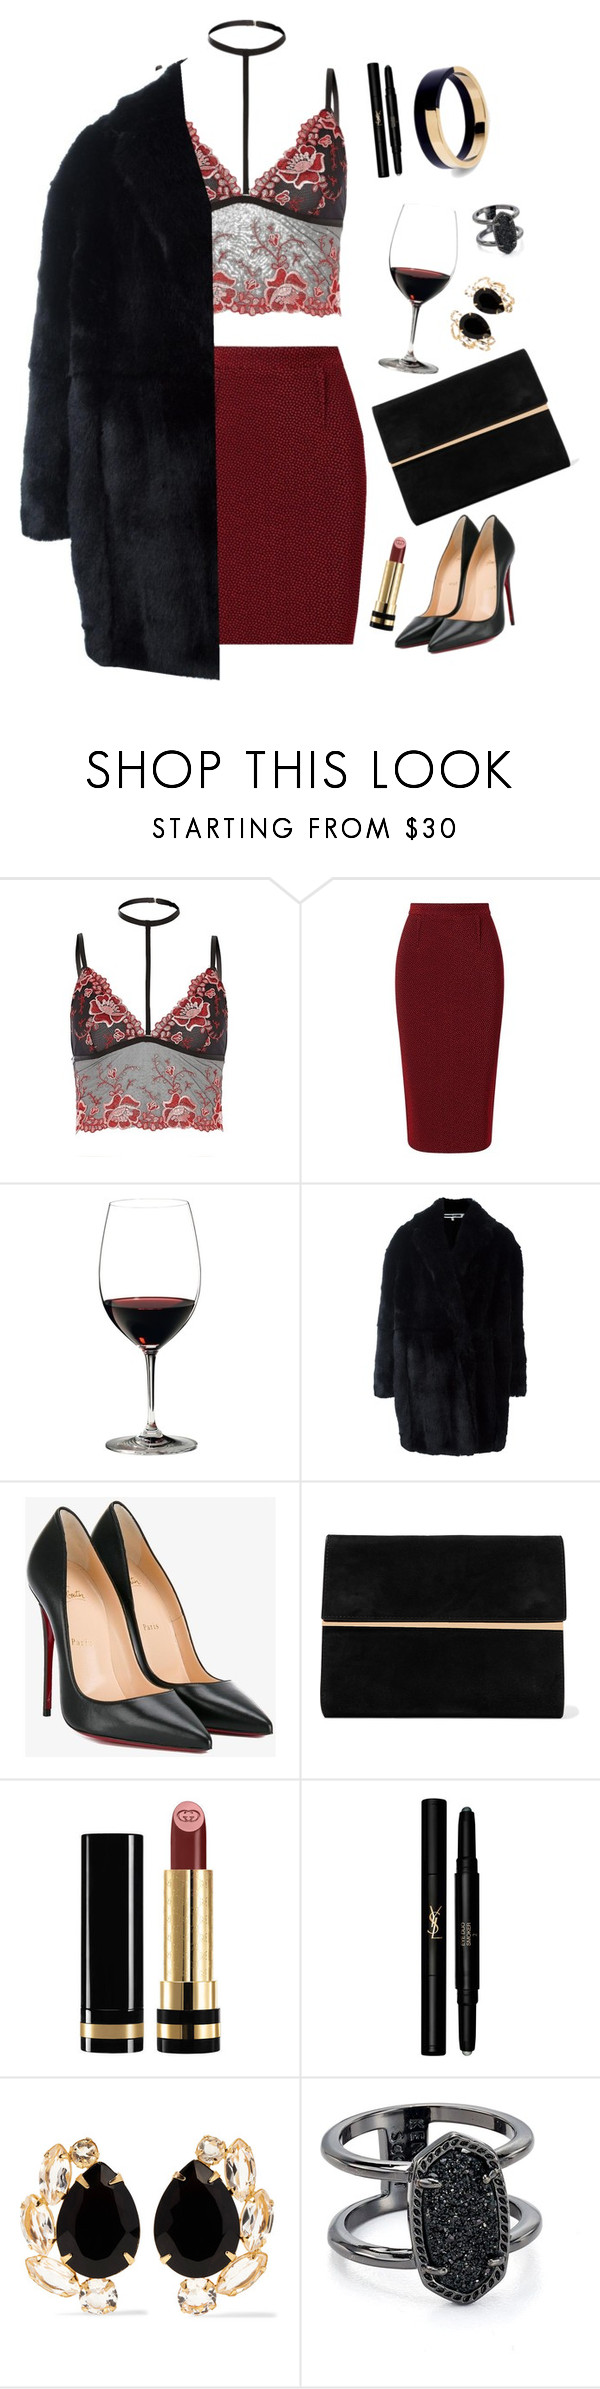 """""""boy drank all that magnolia wine//0.1"""" by calamythie ❤ liked on Polyvore featuring River Island, Roland Mouret, Riedel, Alexander McQueen, Christian Louboutin, Maison Margiela, Gucci, Yves Saint Laurent, Bounkit and Kendra Scott"""